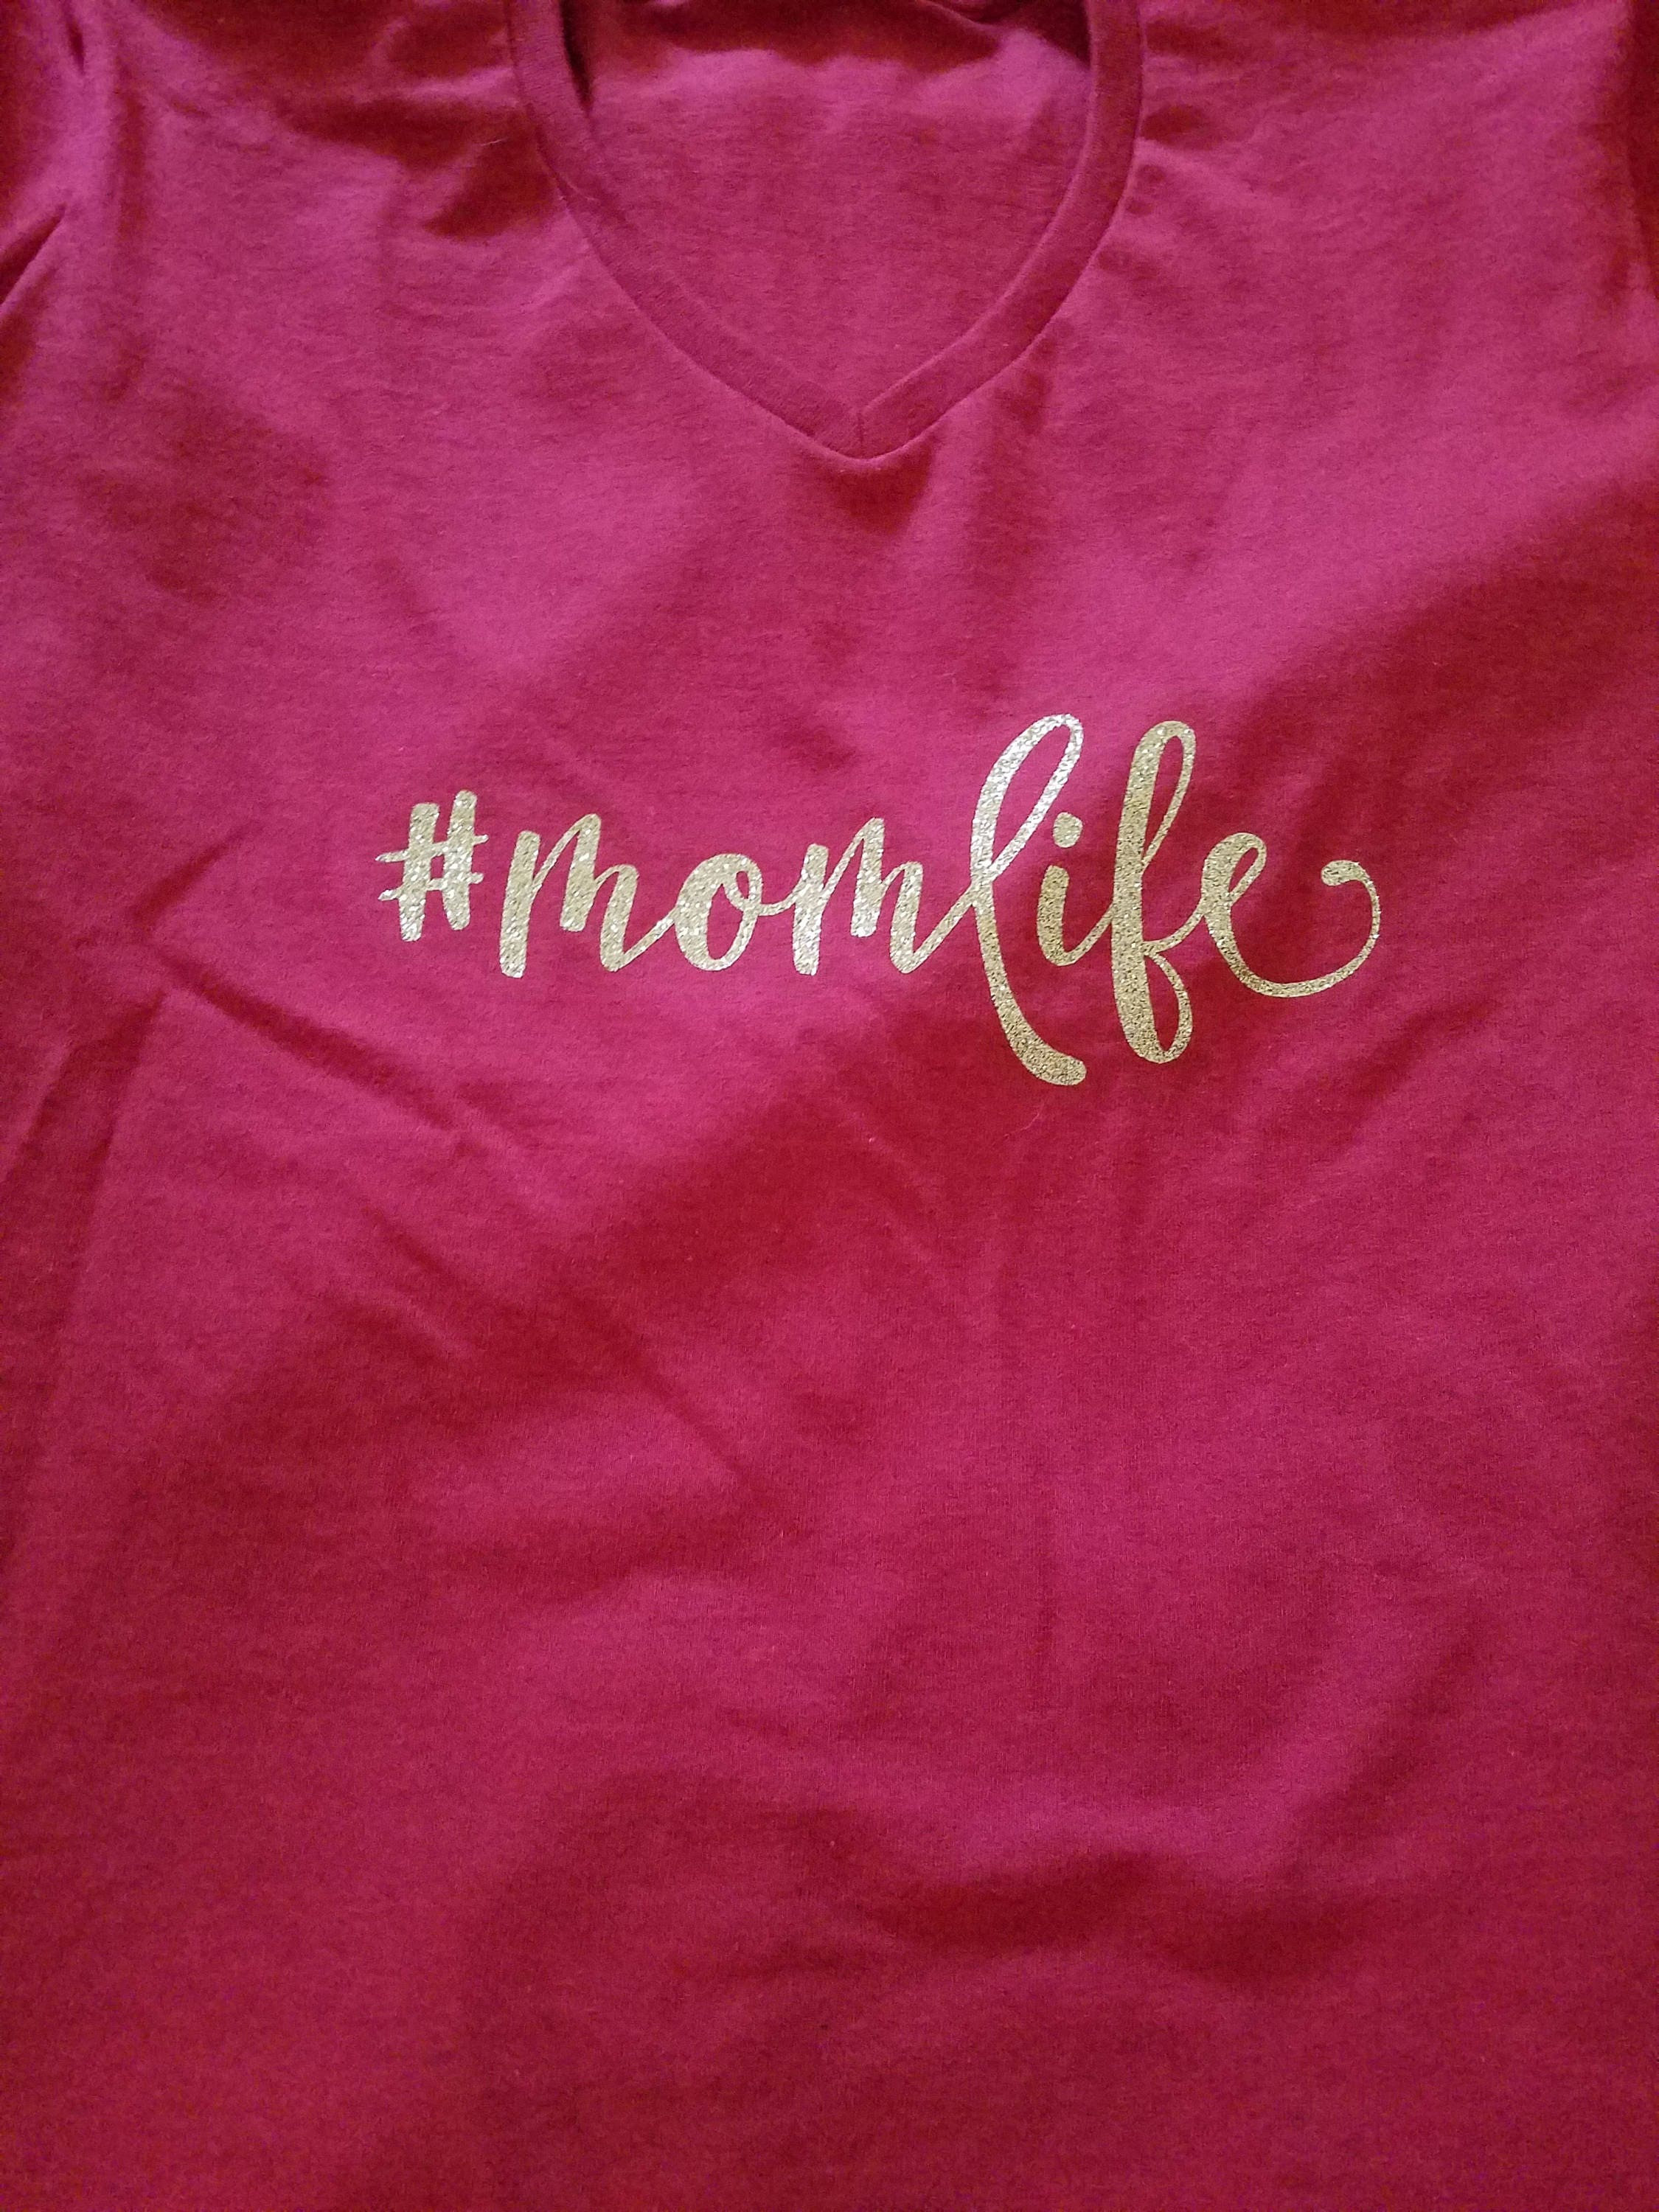 Personalized tees